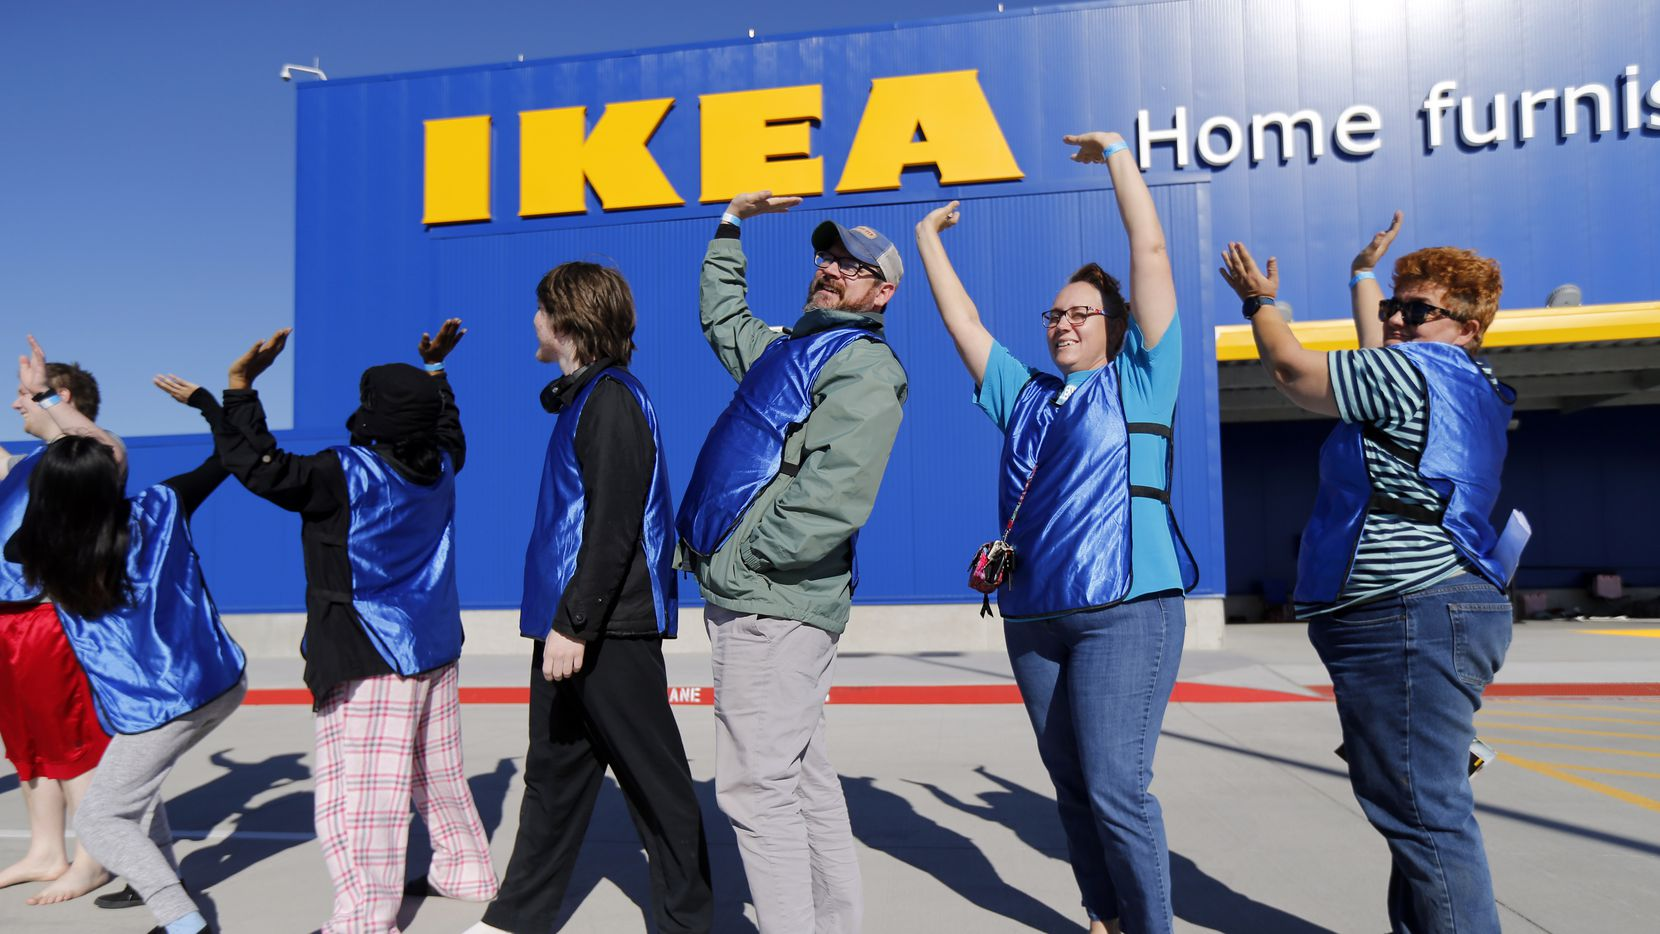 To keep campers from getting bored, IKEA gave them group competitions to perform at the new IKEA Home Furnishings store some on SH 161 in Grand Prairie, Texas.  The campers here posed for a photo like they were holding up the IKEA sign, Tuesday, December 12, 2017.